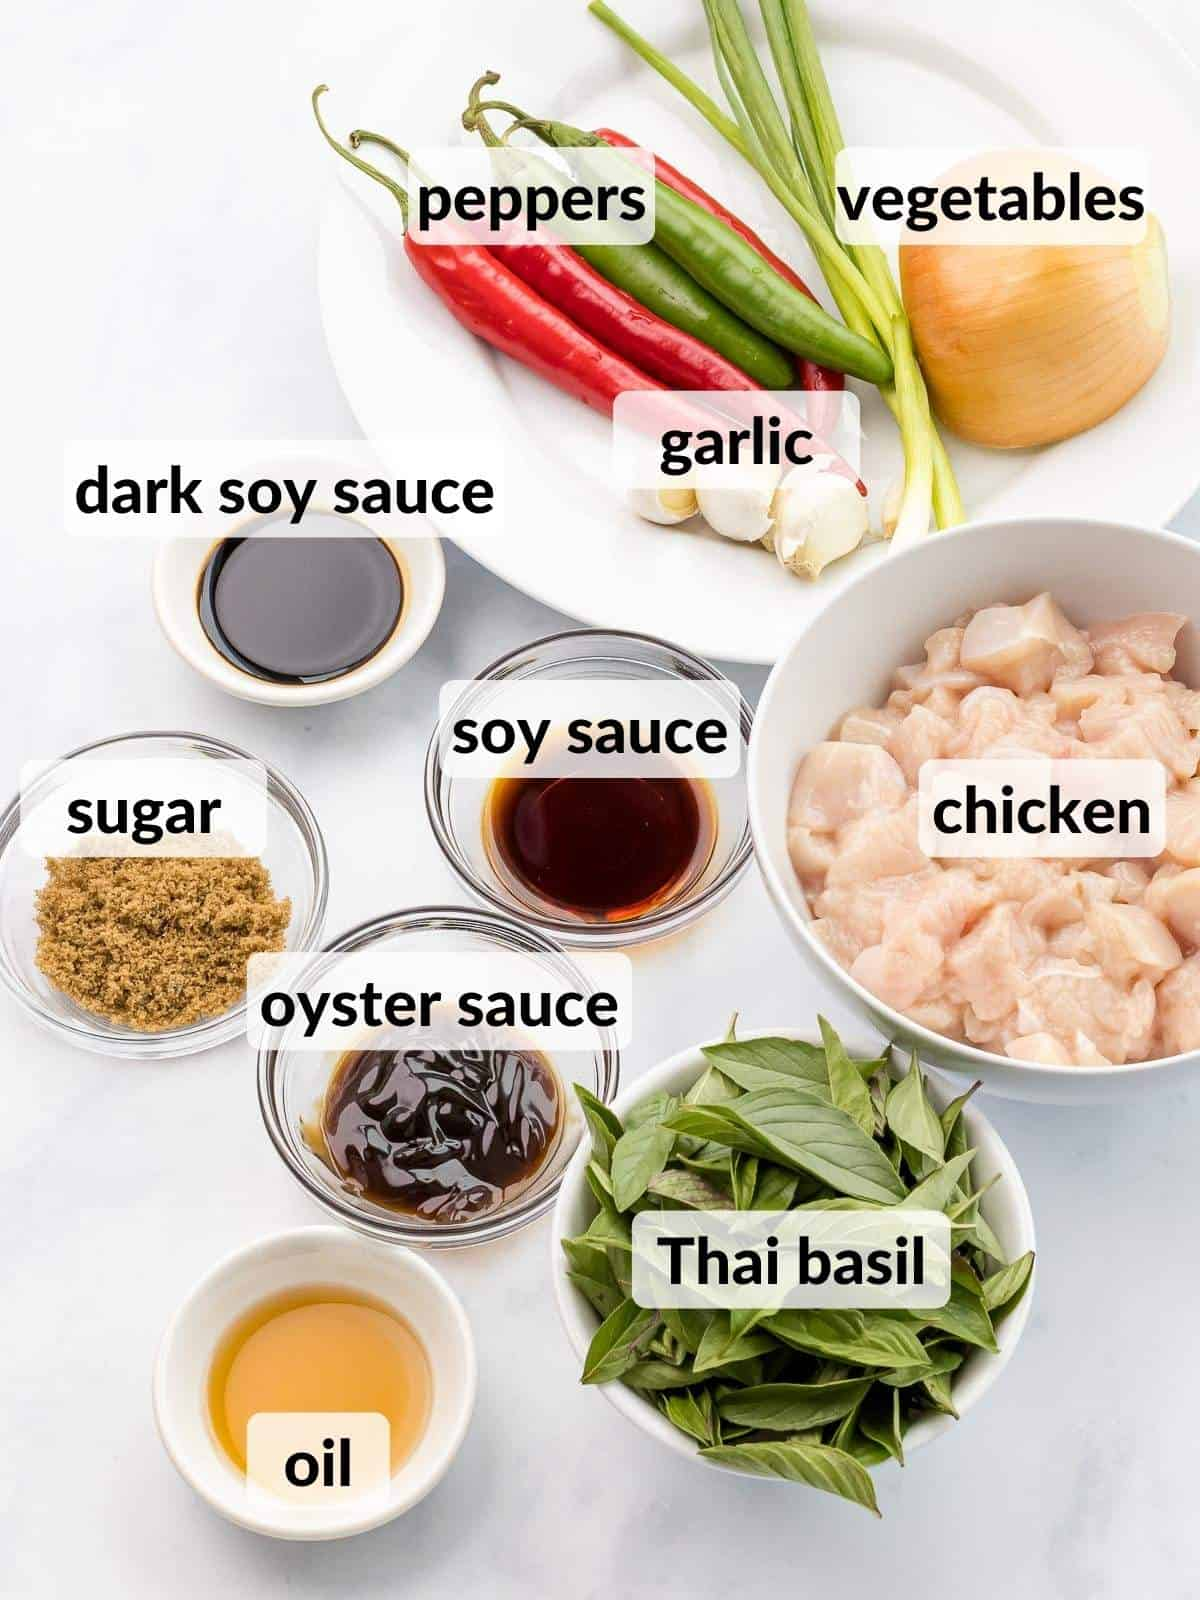 Ingredients for Thai basil chicken in small bowls.